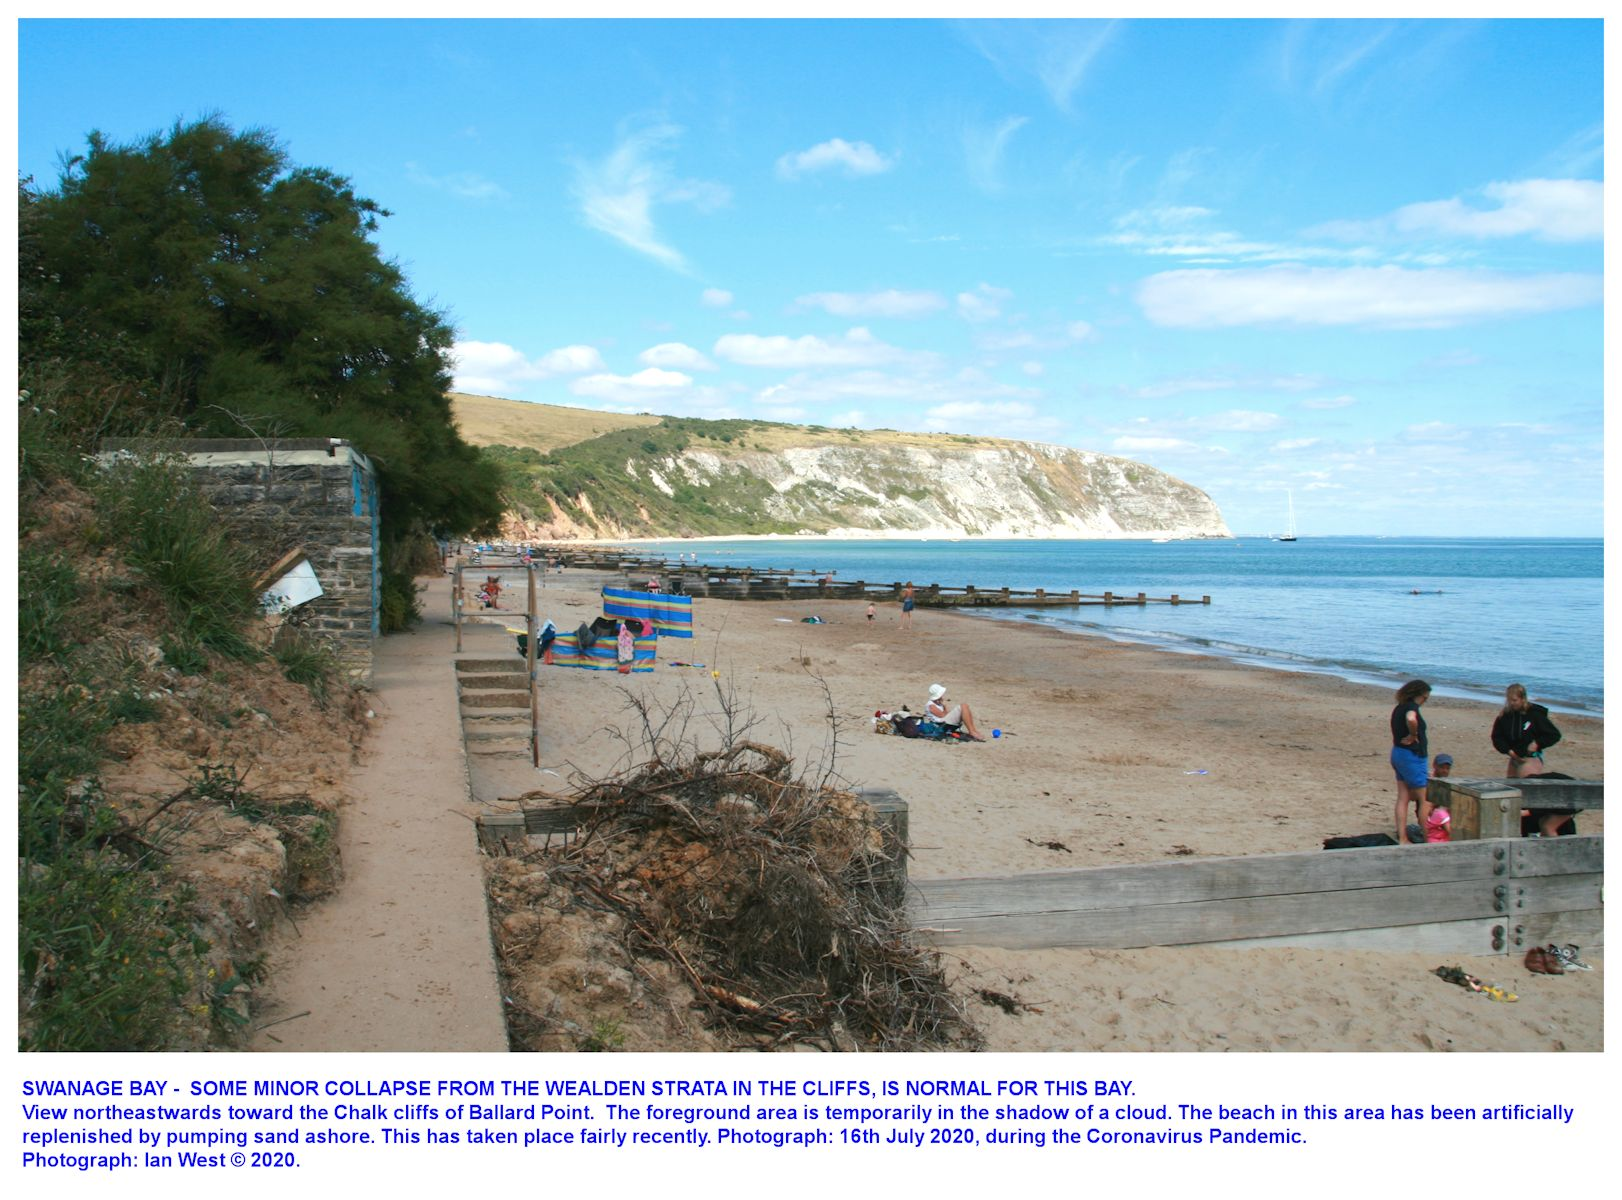 A quiet part of the beach in  New Swanage area, near the centre of Swanage Bay, Dorset, as seen in July 2020